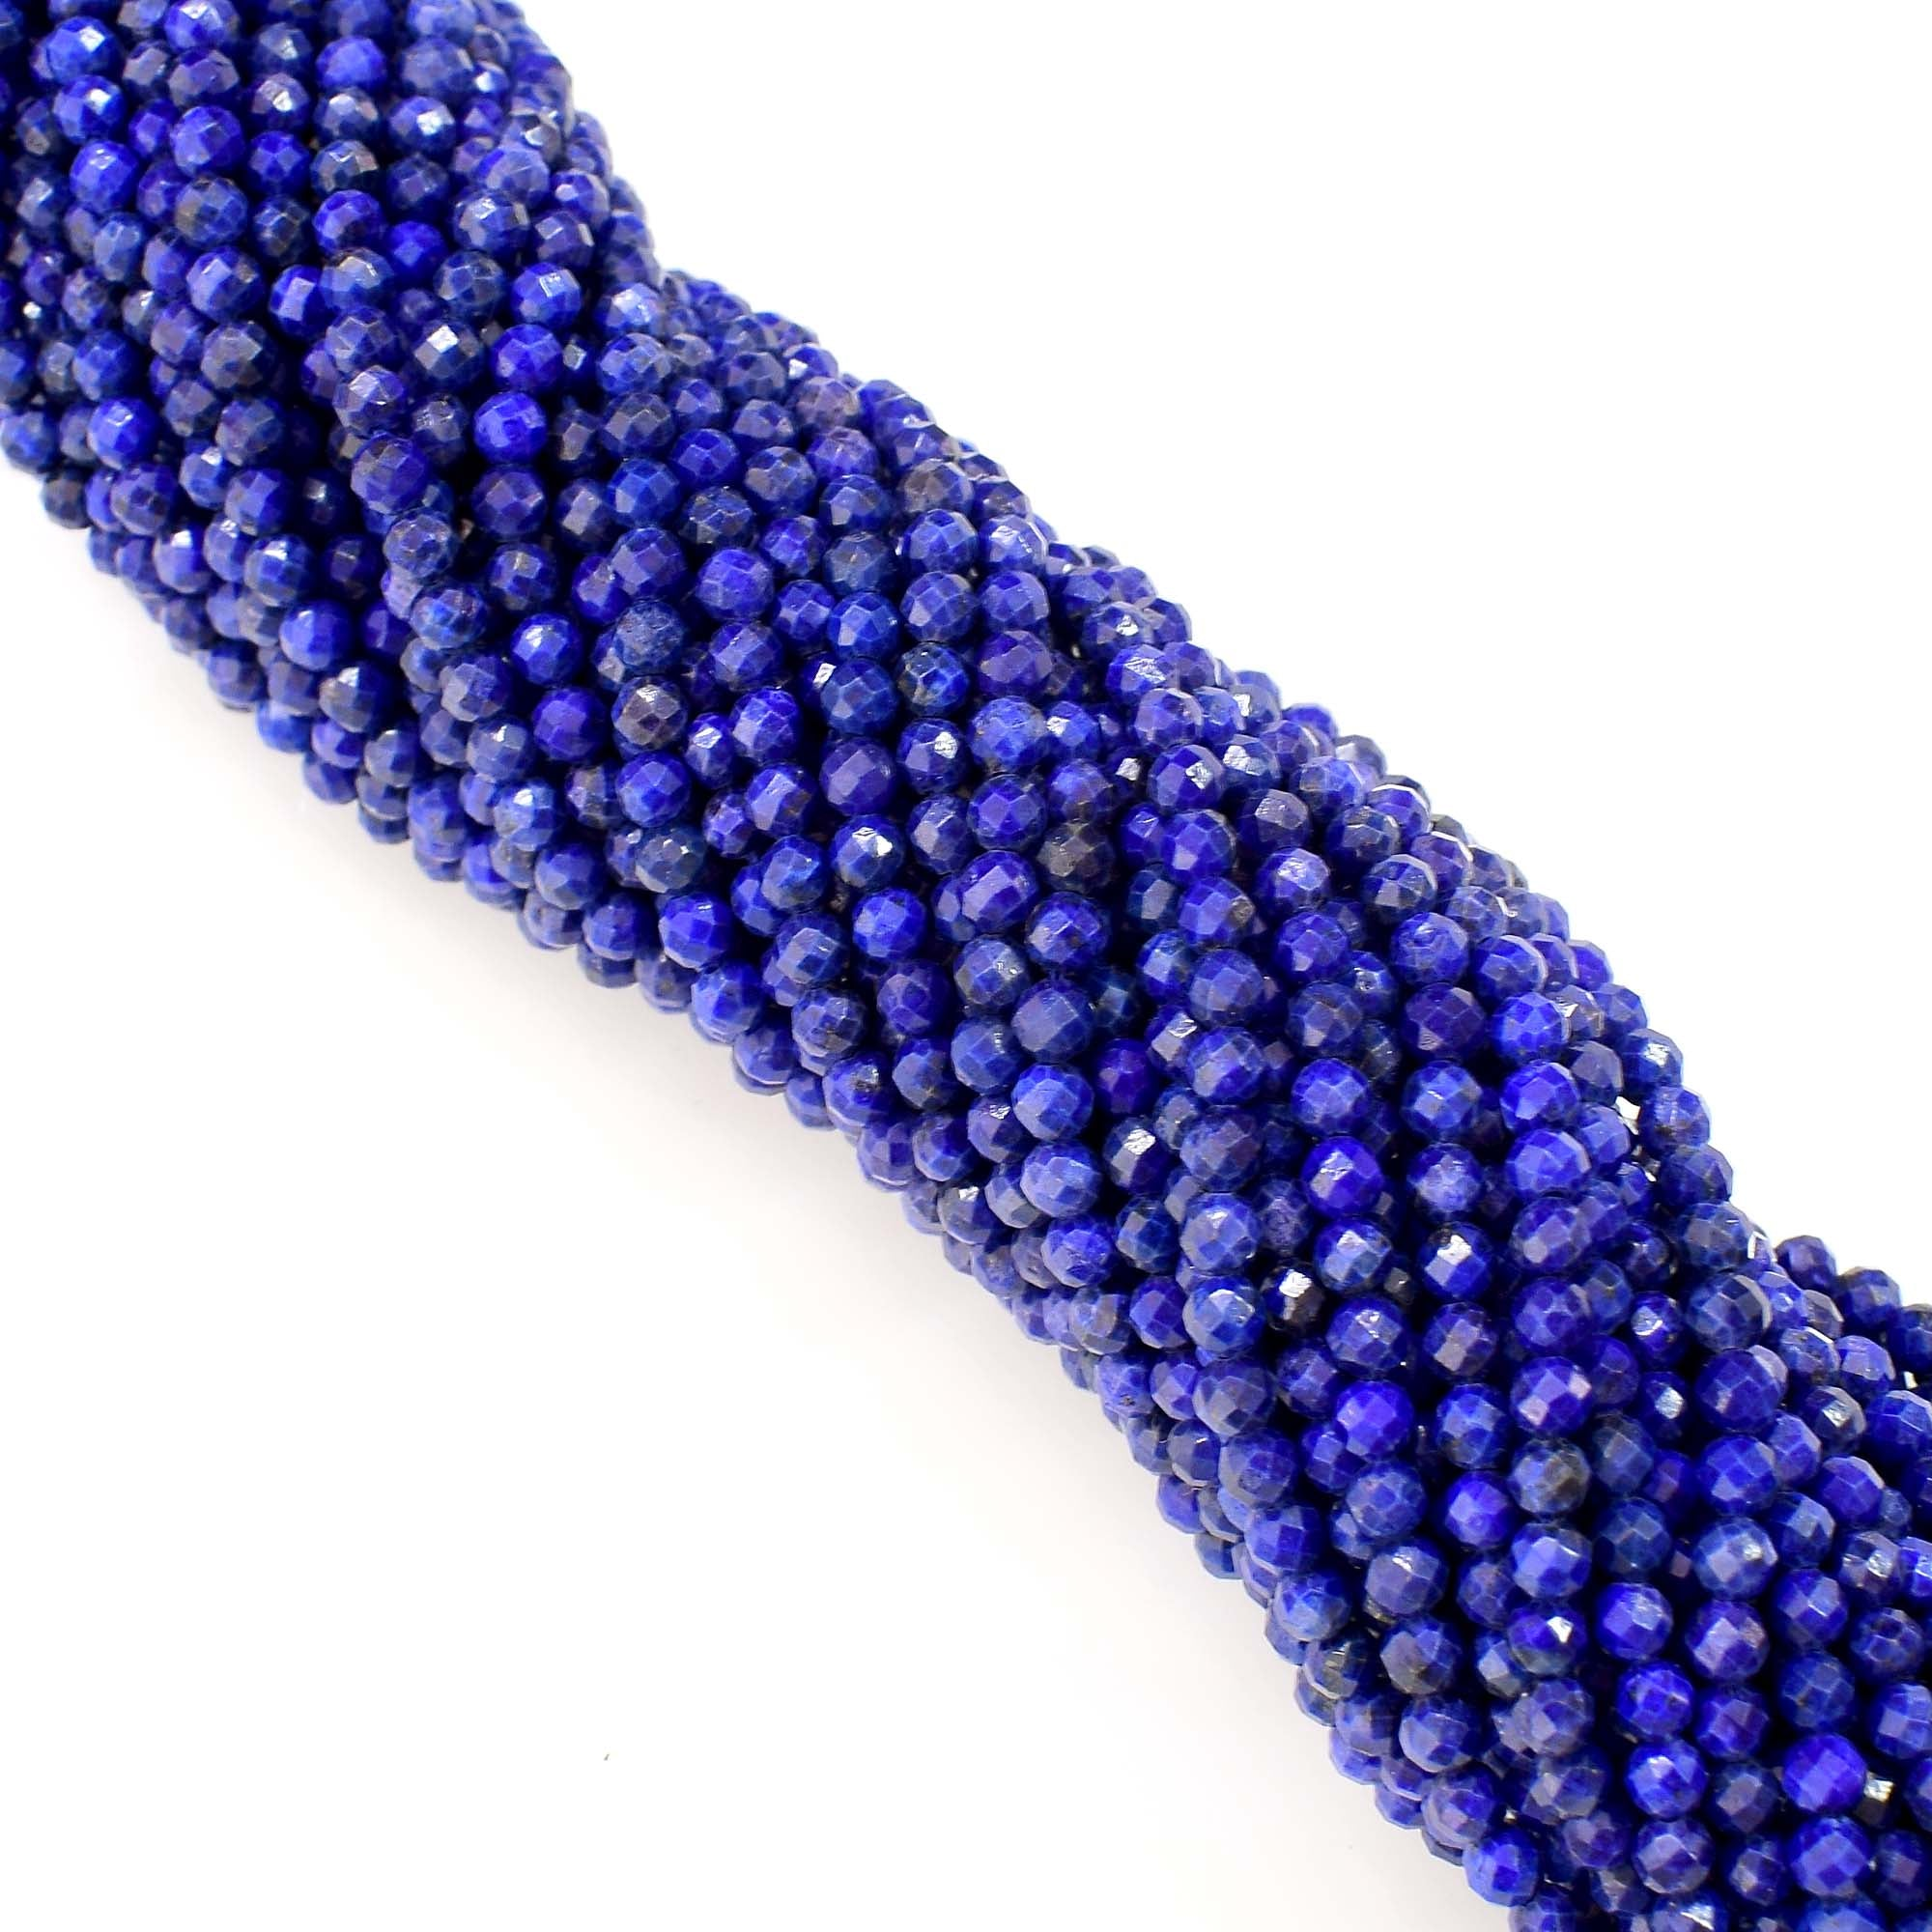 Natural Lapis Lazuli Beads / Round Shape Faceted Lapis / 3-4mm Lapis Gemstone Beads